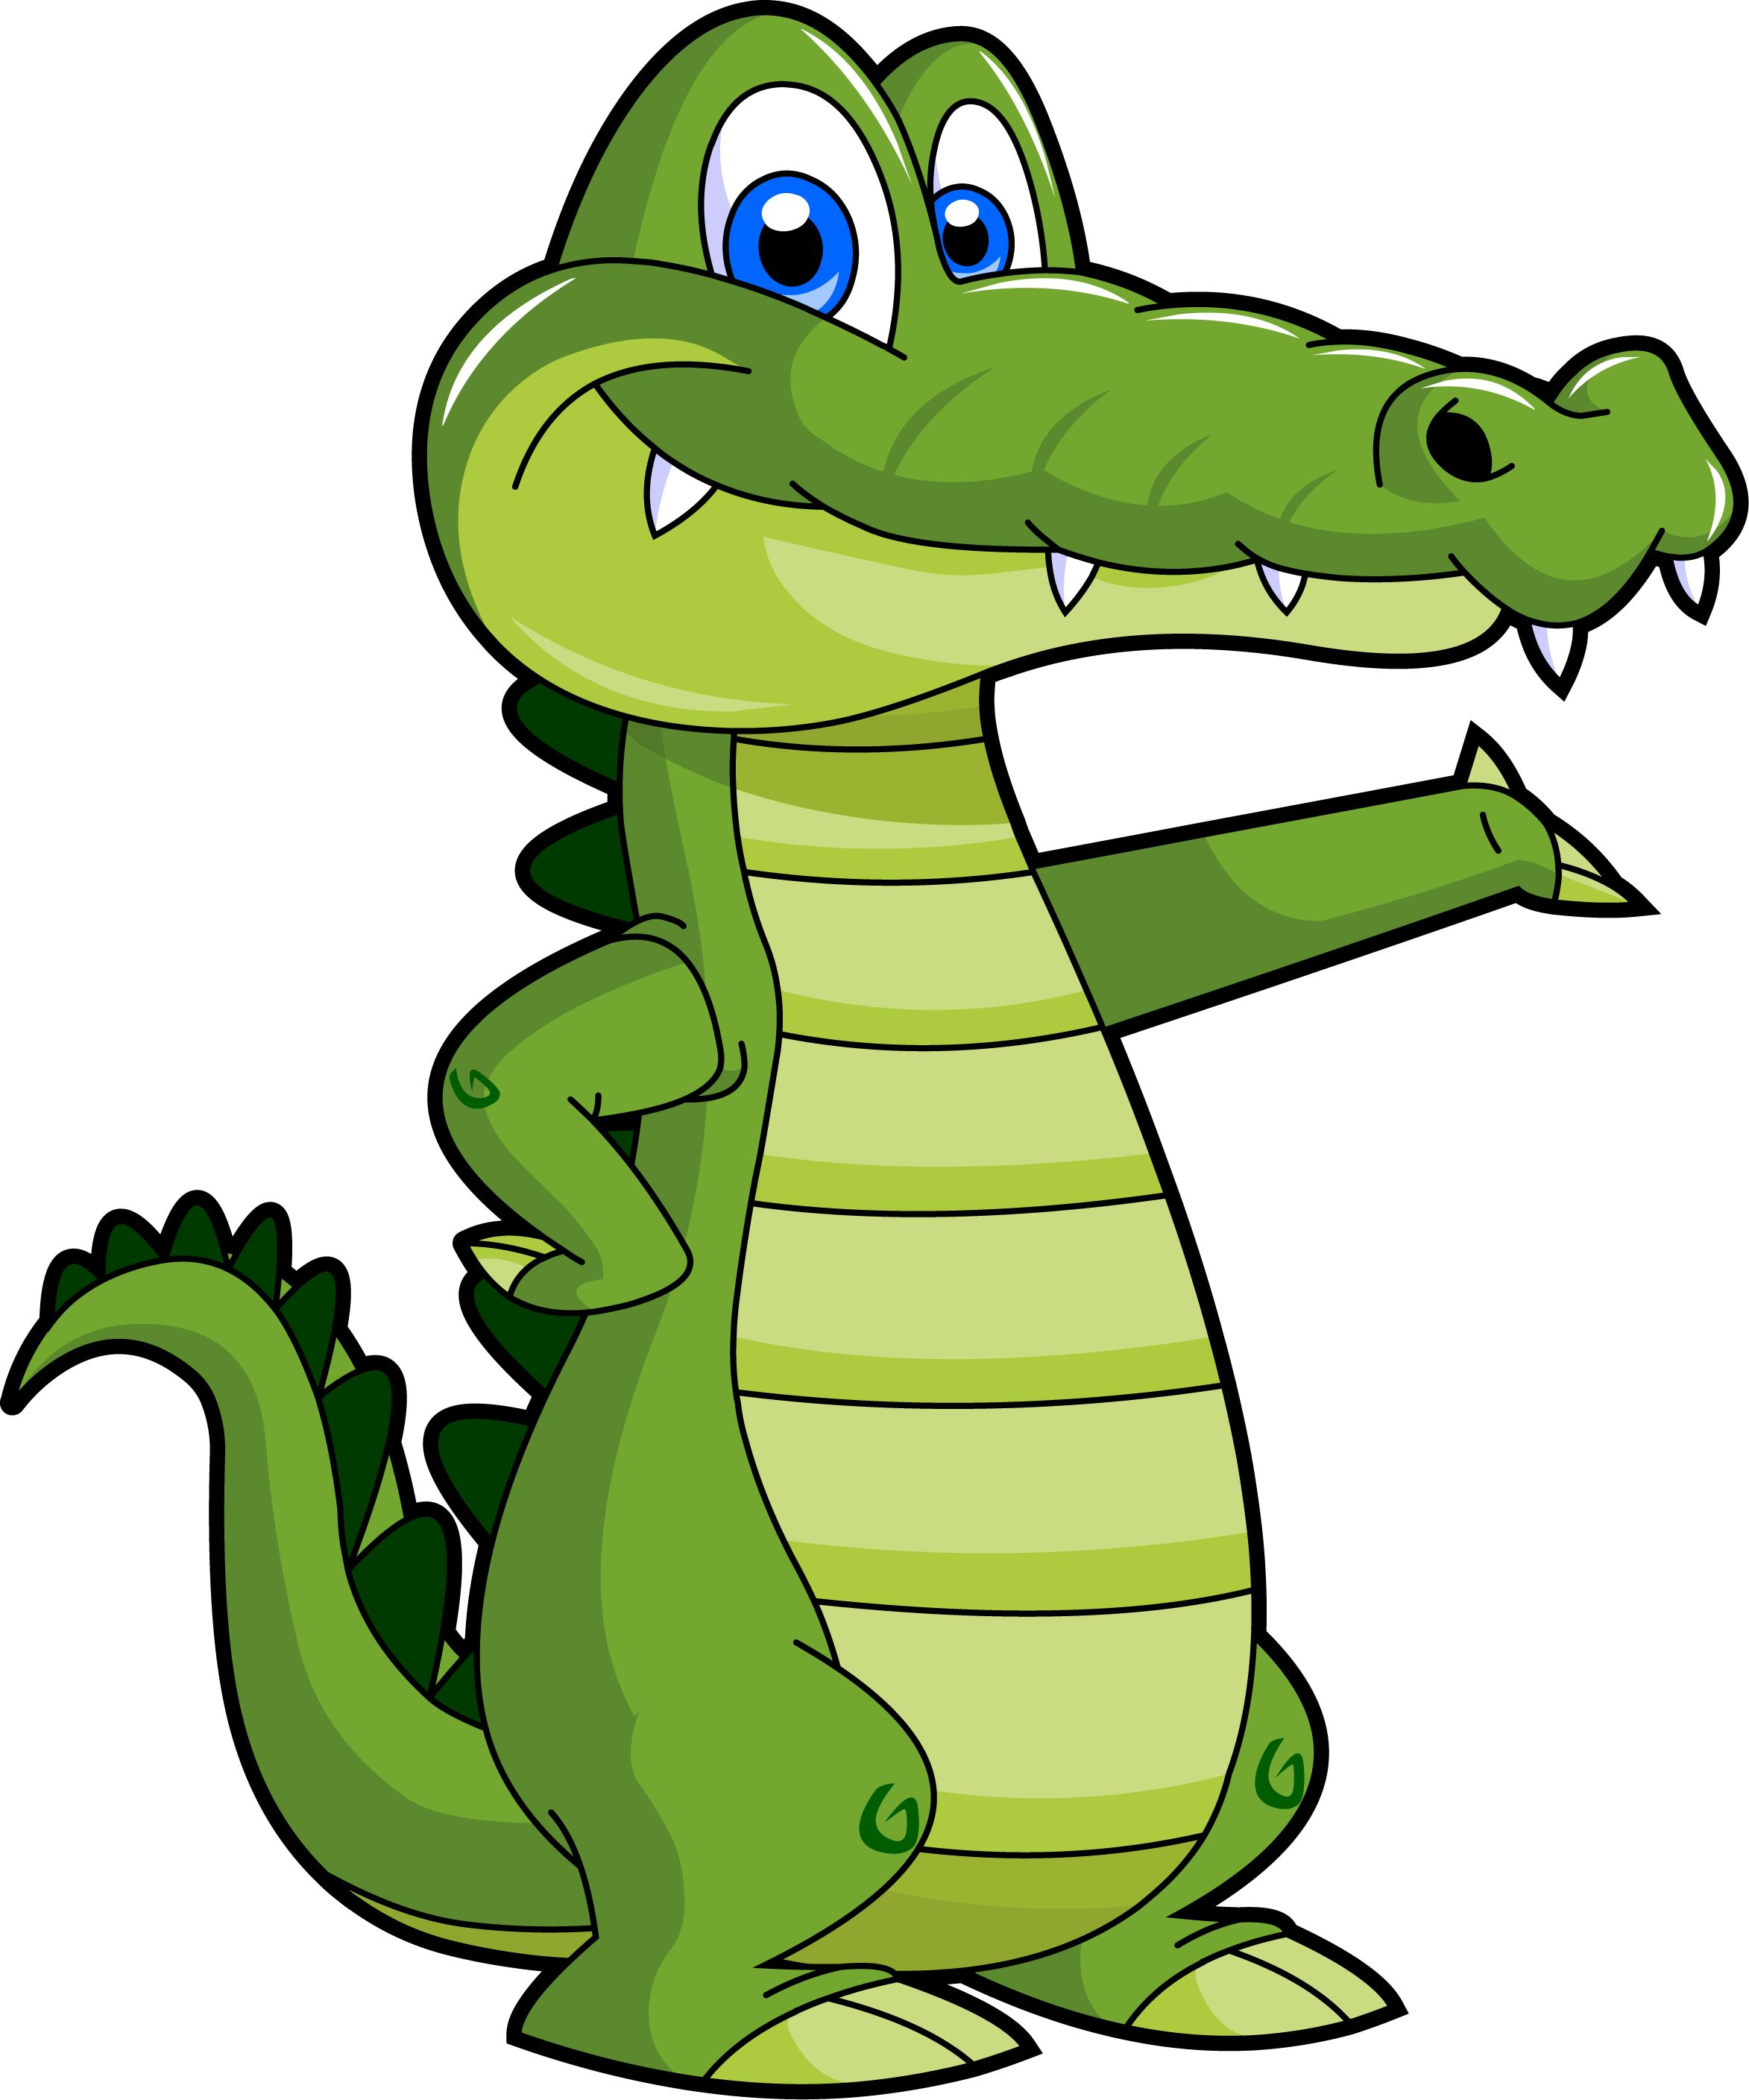 Cartoon Gator - Clipart library